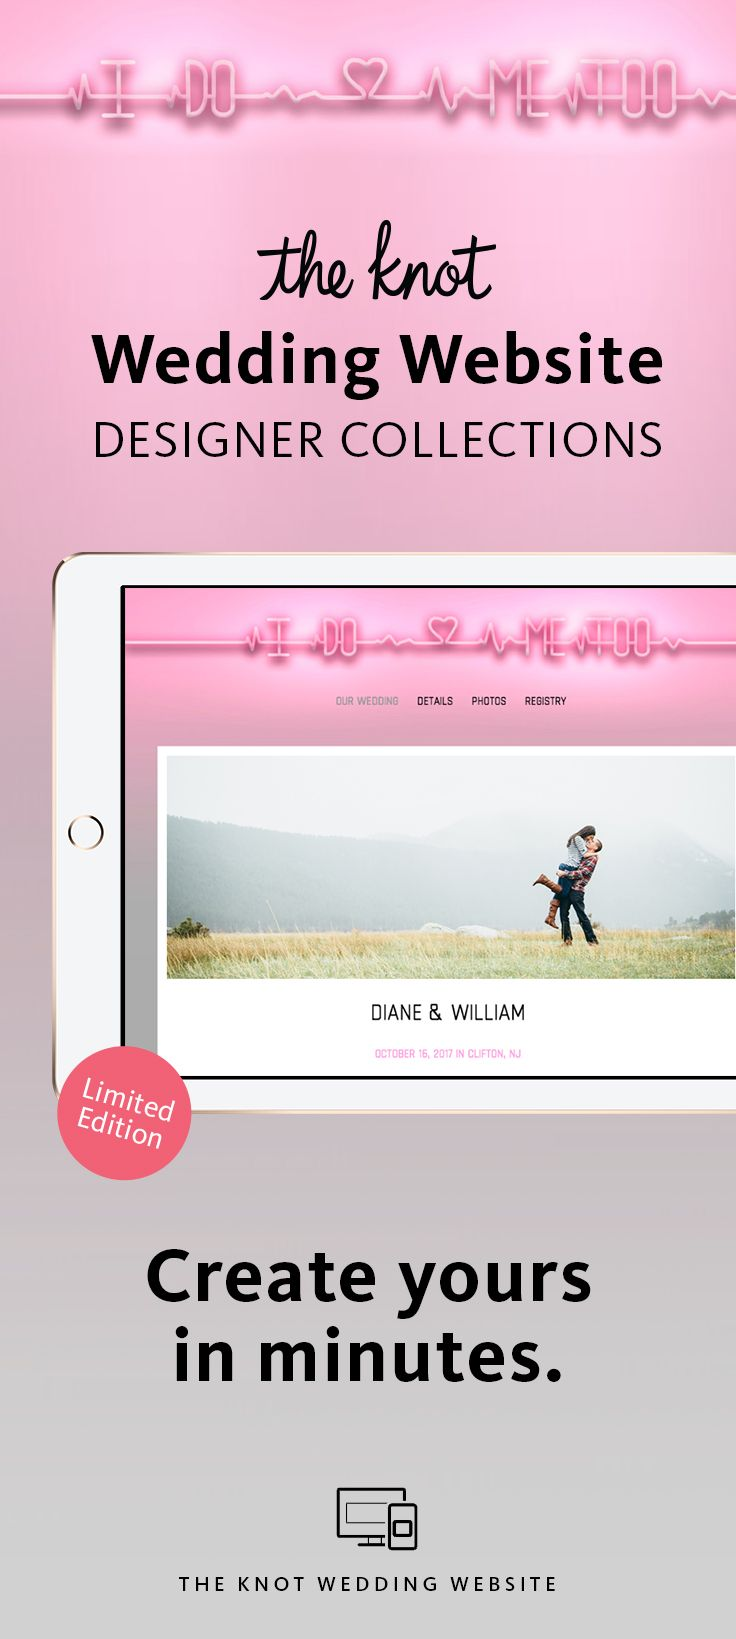 The Knot Wedding Website Designer Collection: All-in-One Registry ...